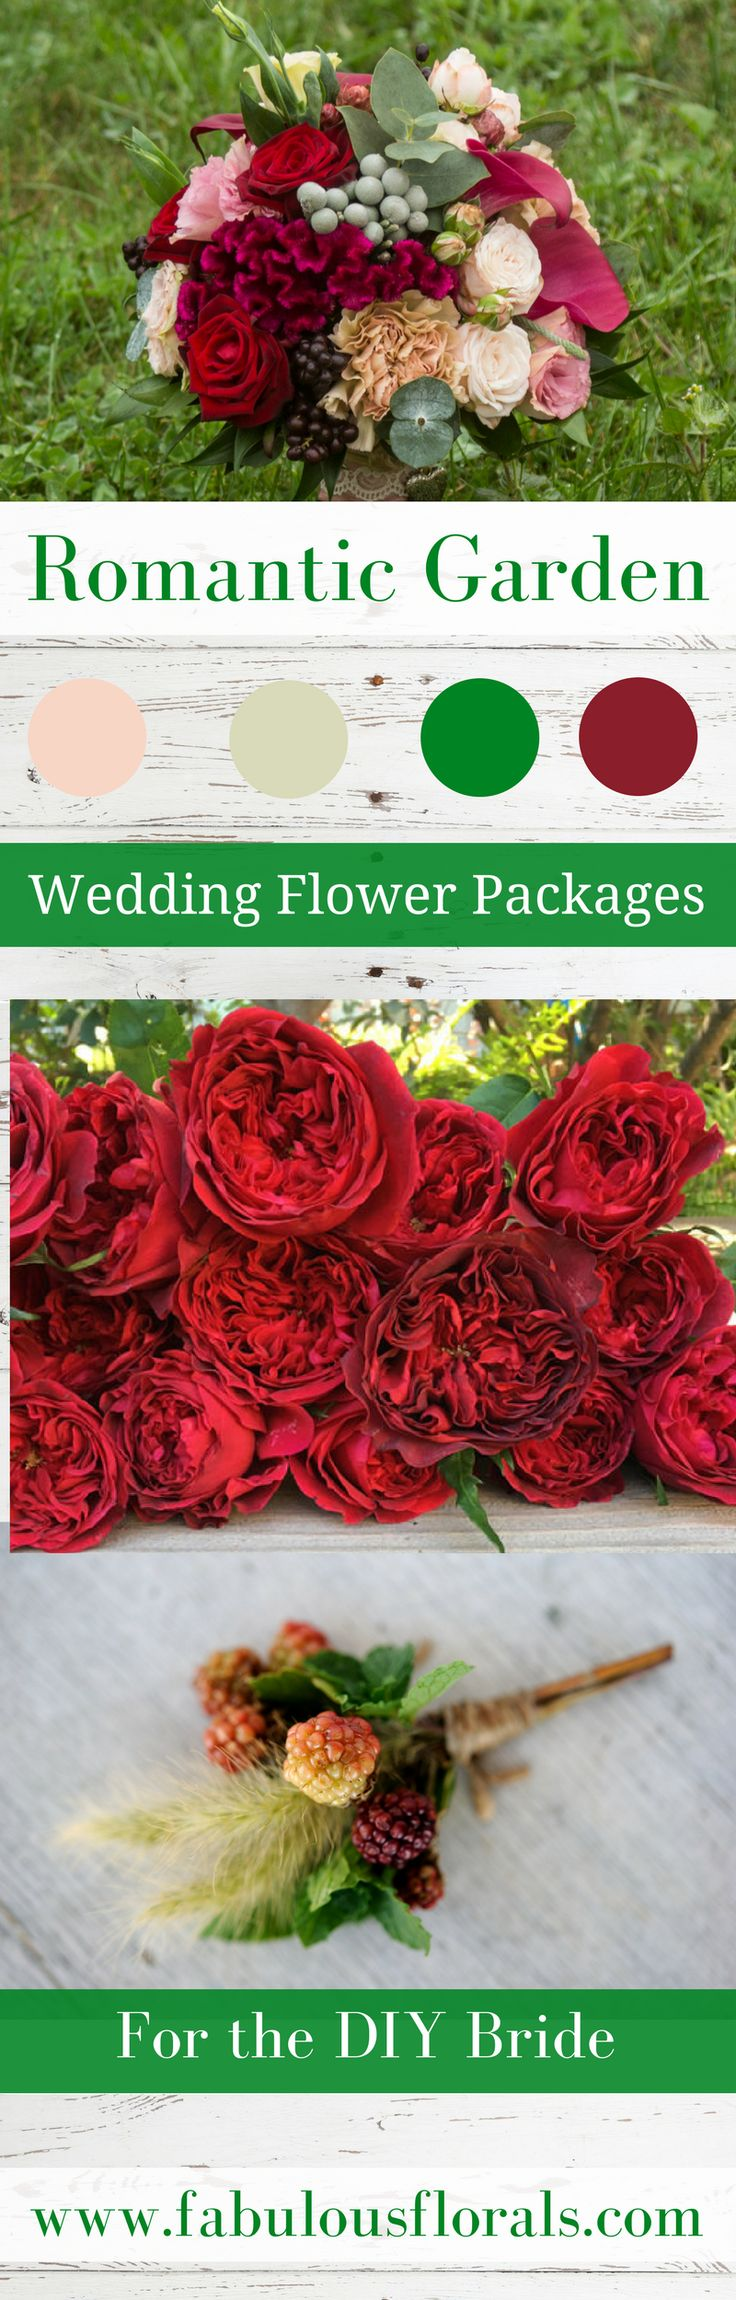 Wedding Trends! Romantic Garden Wedding Packages and color Palette. DIY wedding Flower Packages! Buy Easy Complete DIY bouquet, Boutonniere & Centerpiece Flower packages online!   How to make a wedding bouquet  DIY wedding bouquet tutorials and instructions. #weddingflowerpackages #weddingflowers #weddingtrends